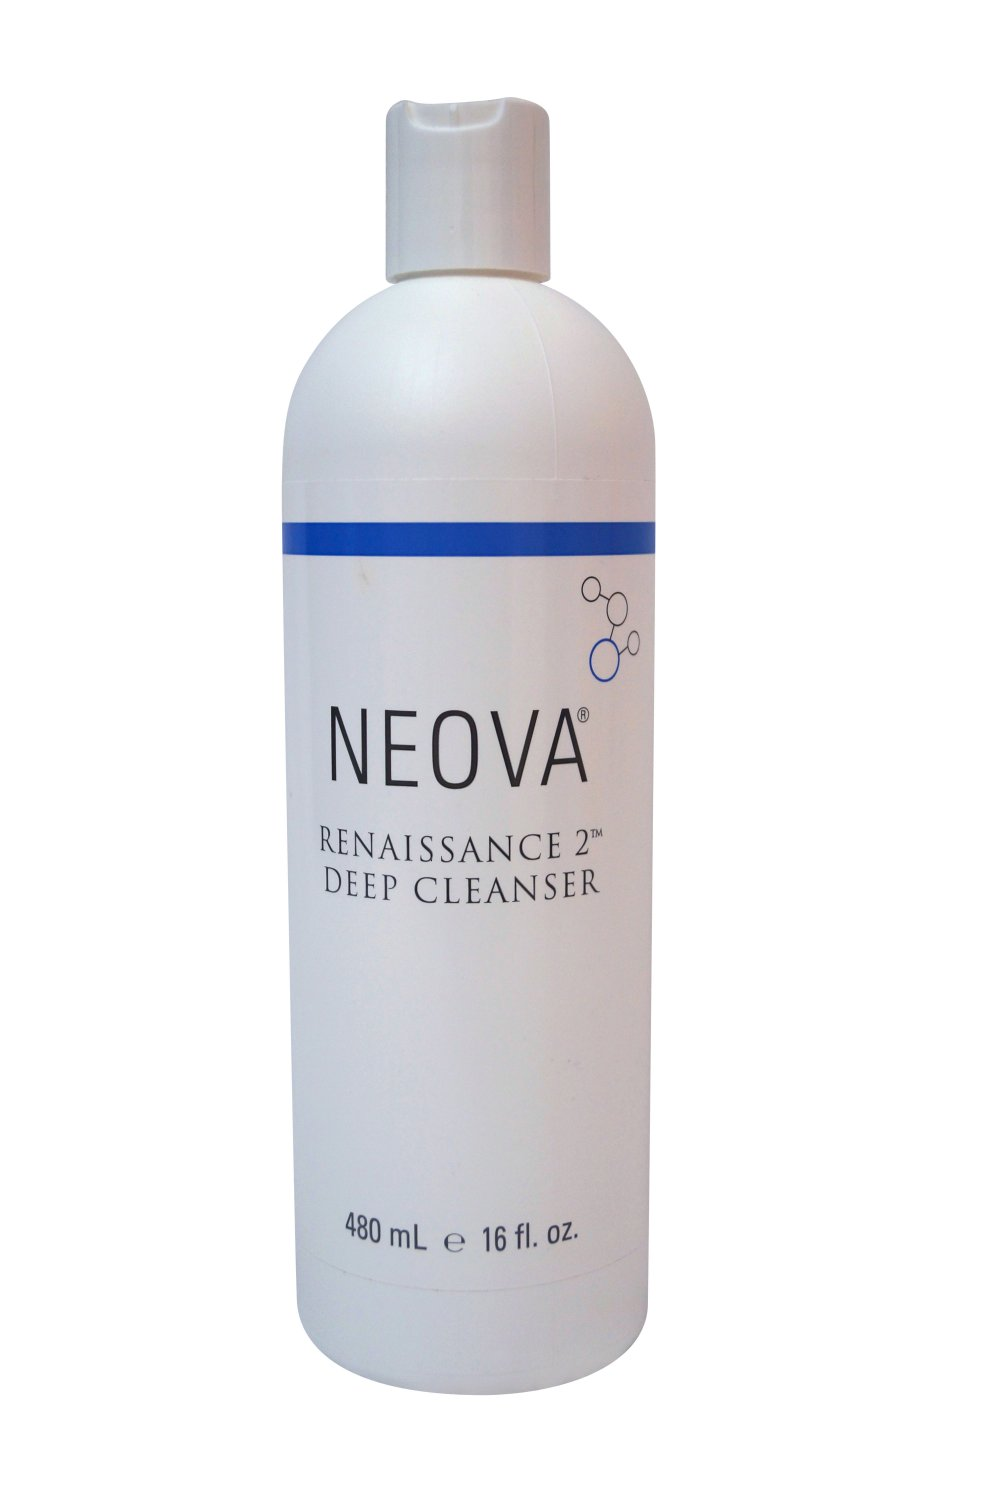 Neova Renaissance 2 Deep Cleanser 480 ml 16 oz